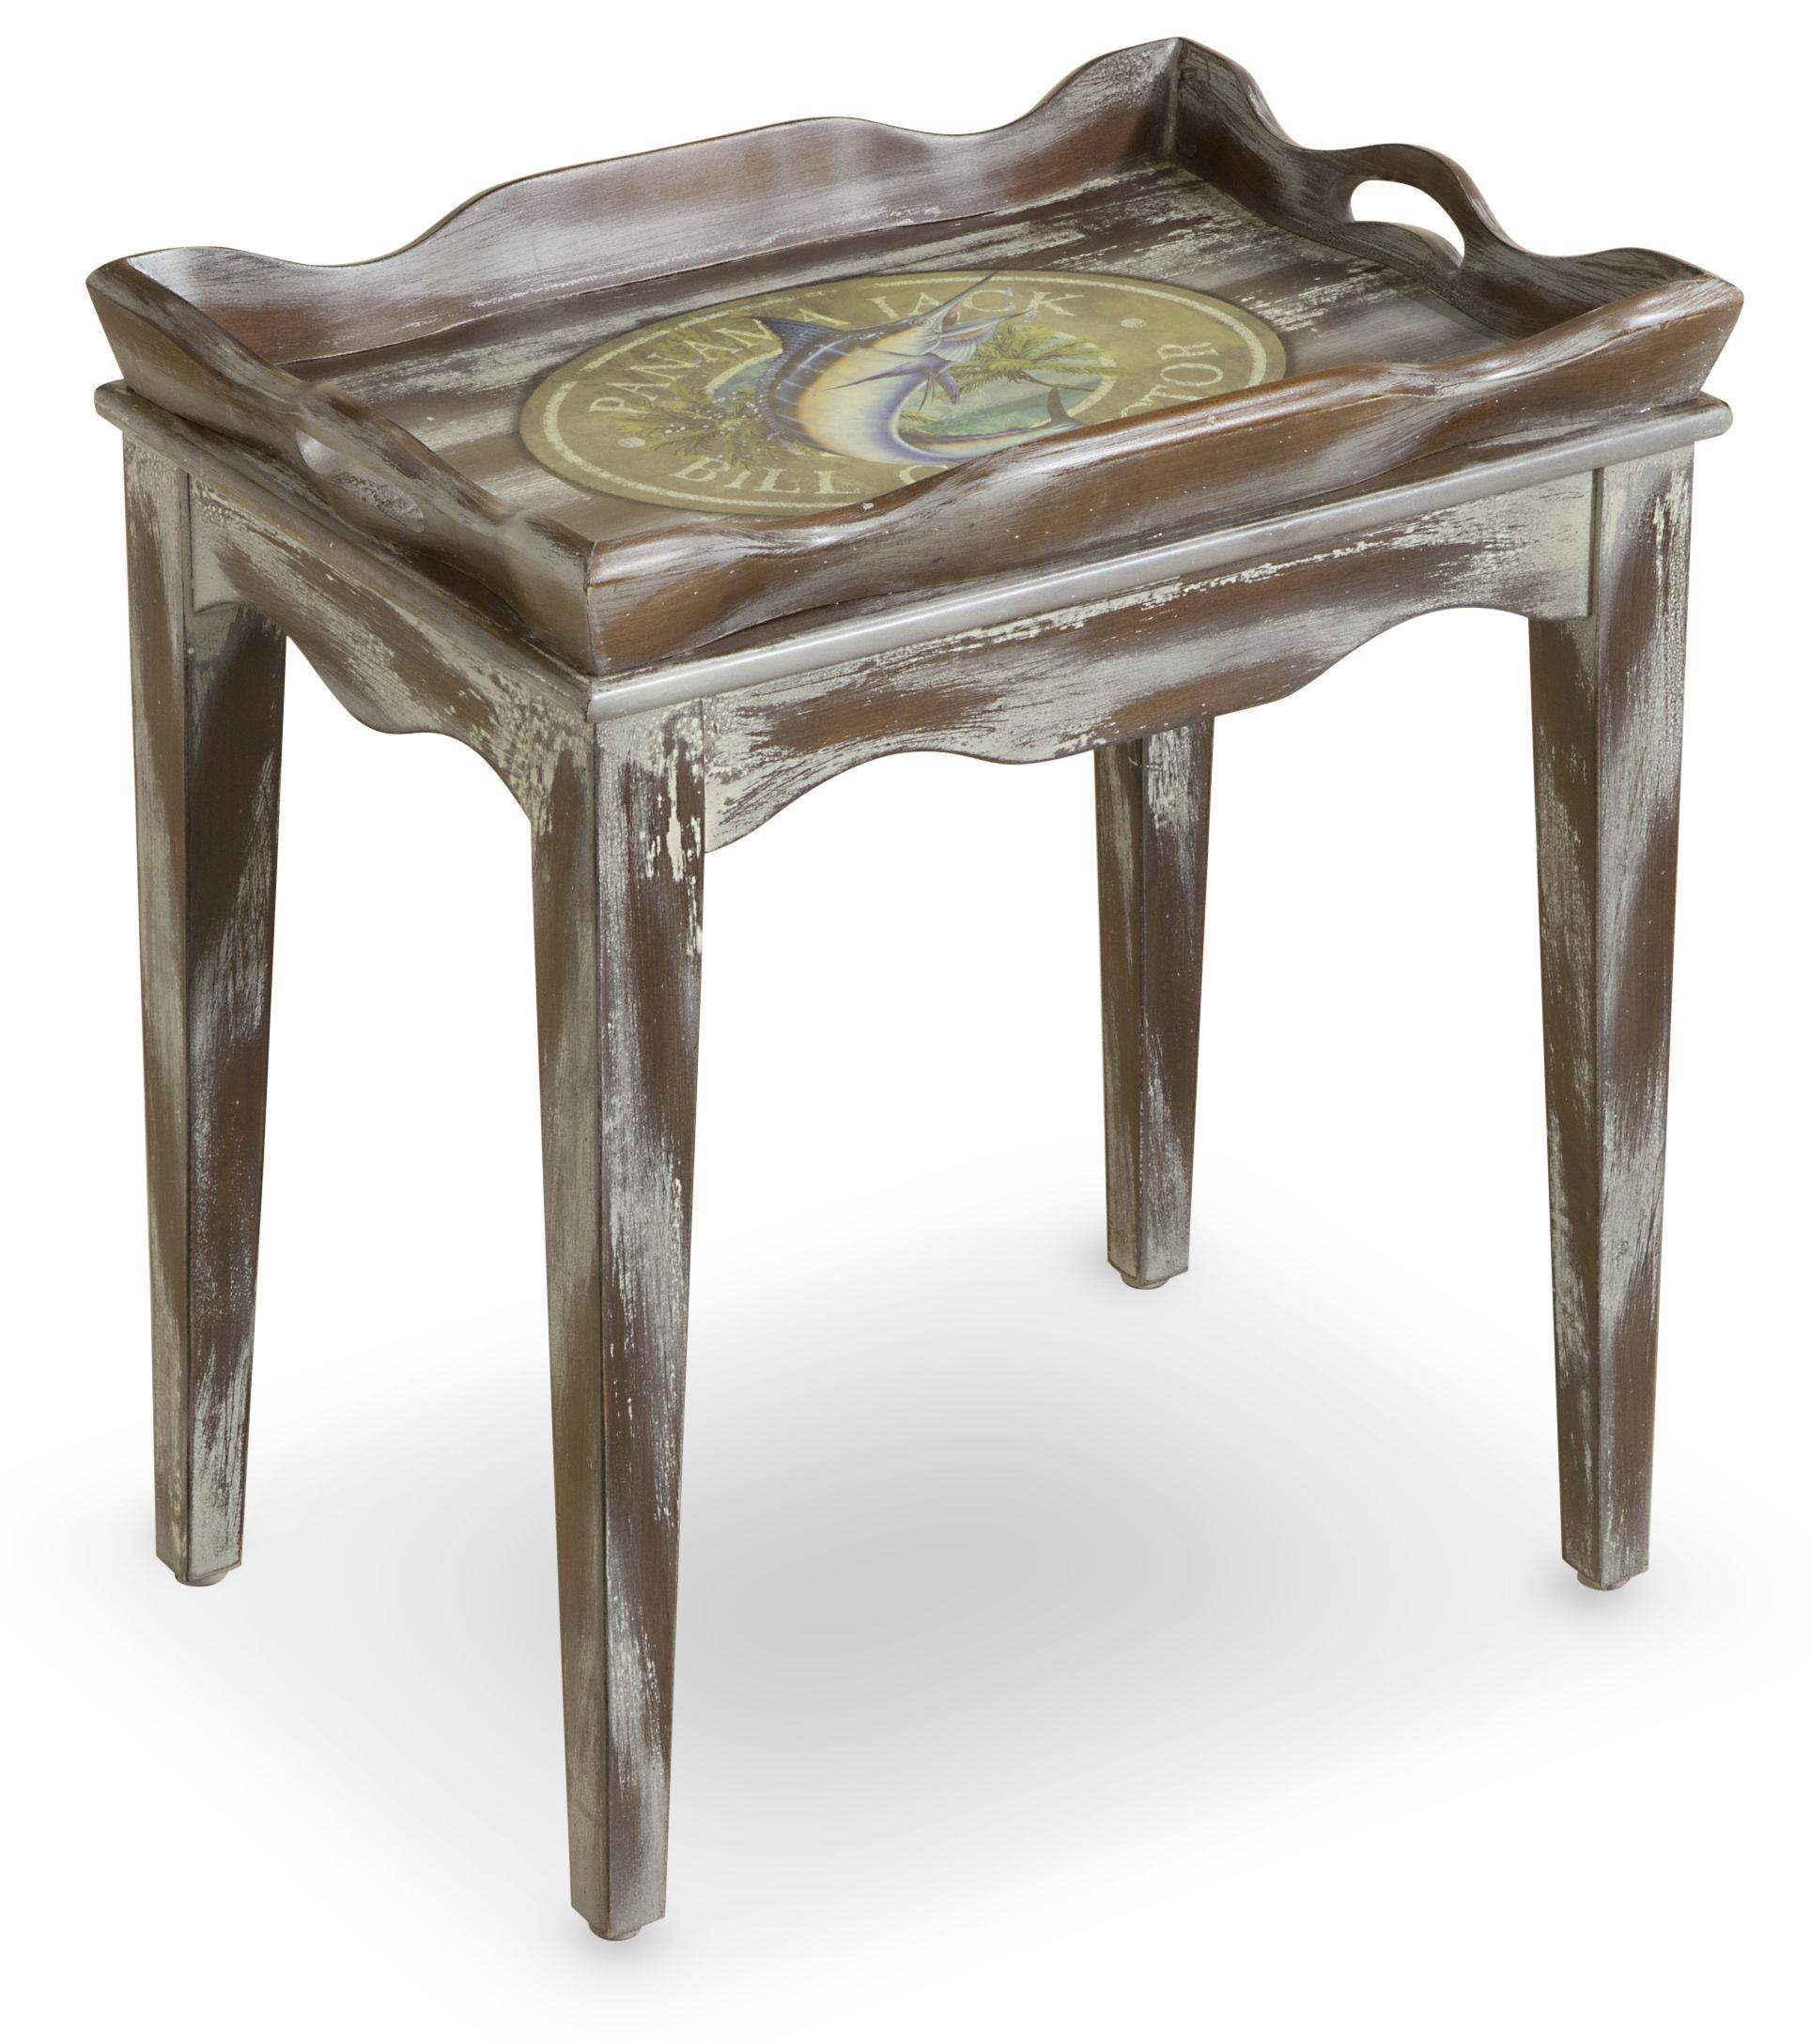 High Accent Tables Stein World Accent Tables High Tide Tray Top Accent Table